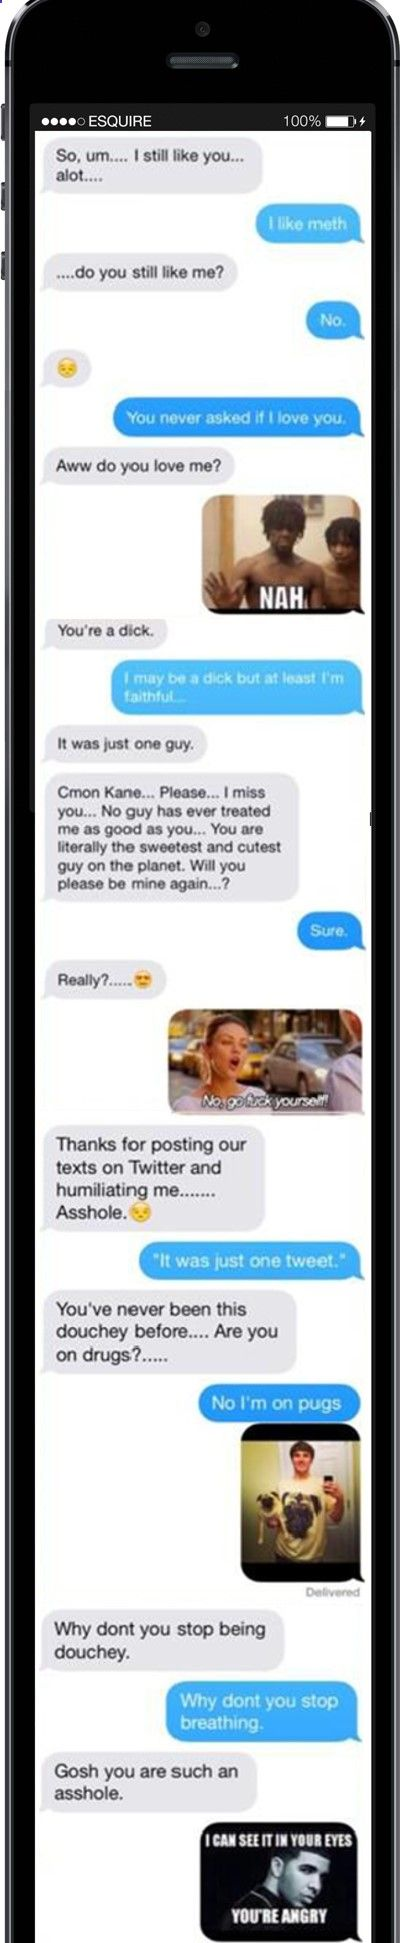 This Guy Got Back At His Cheating Ex, AND IT WAS EPIC!